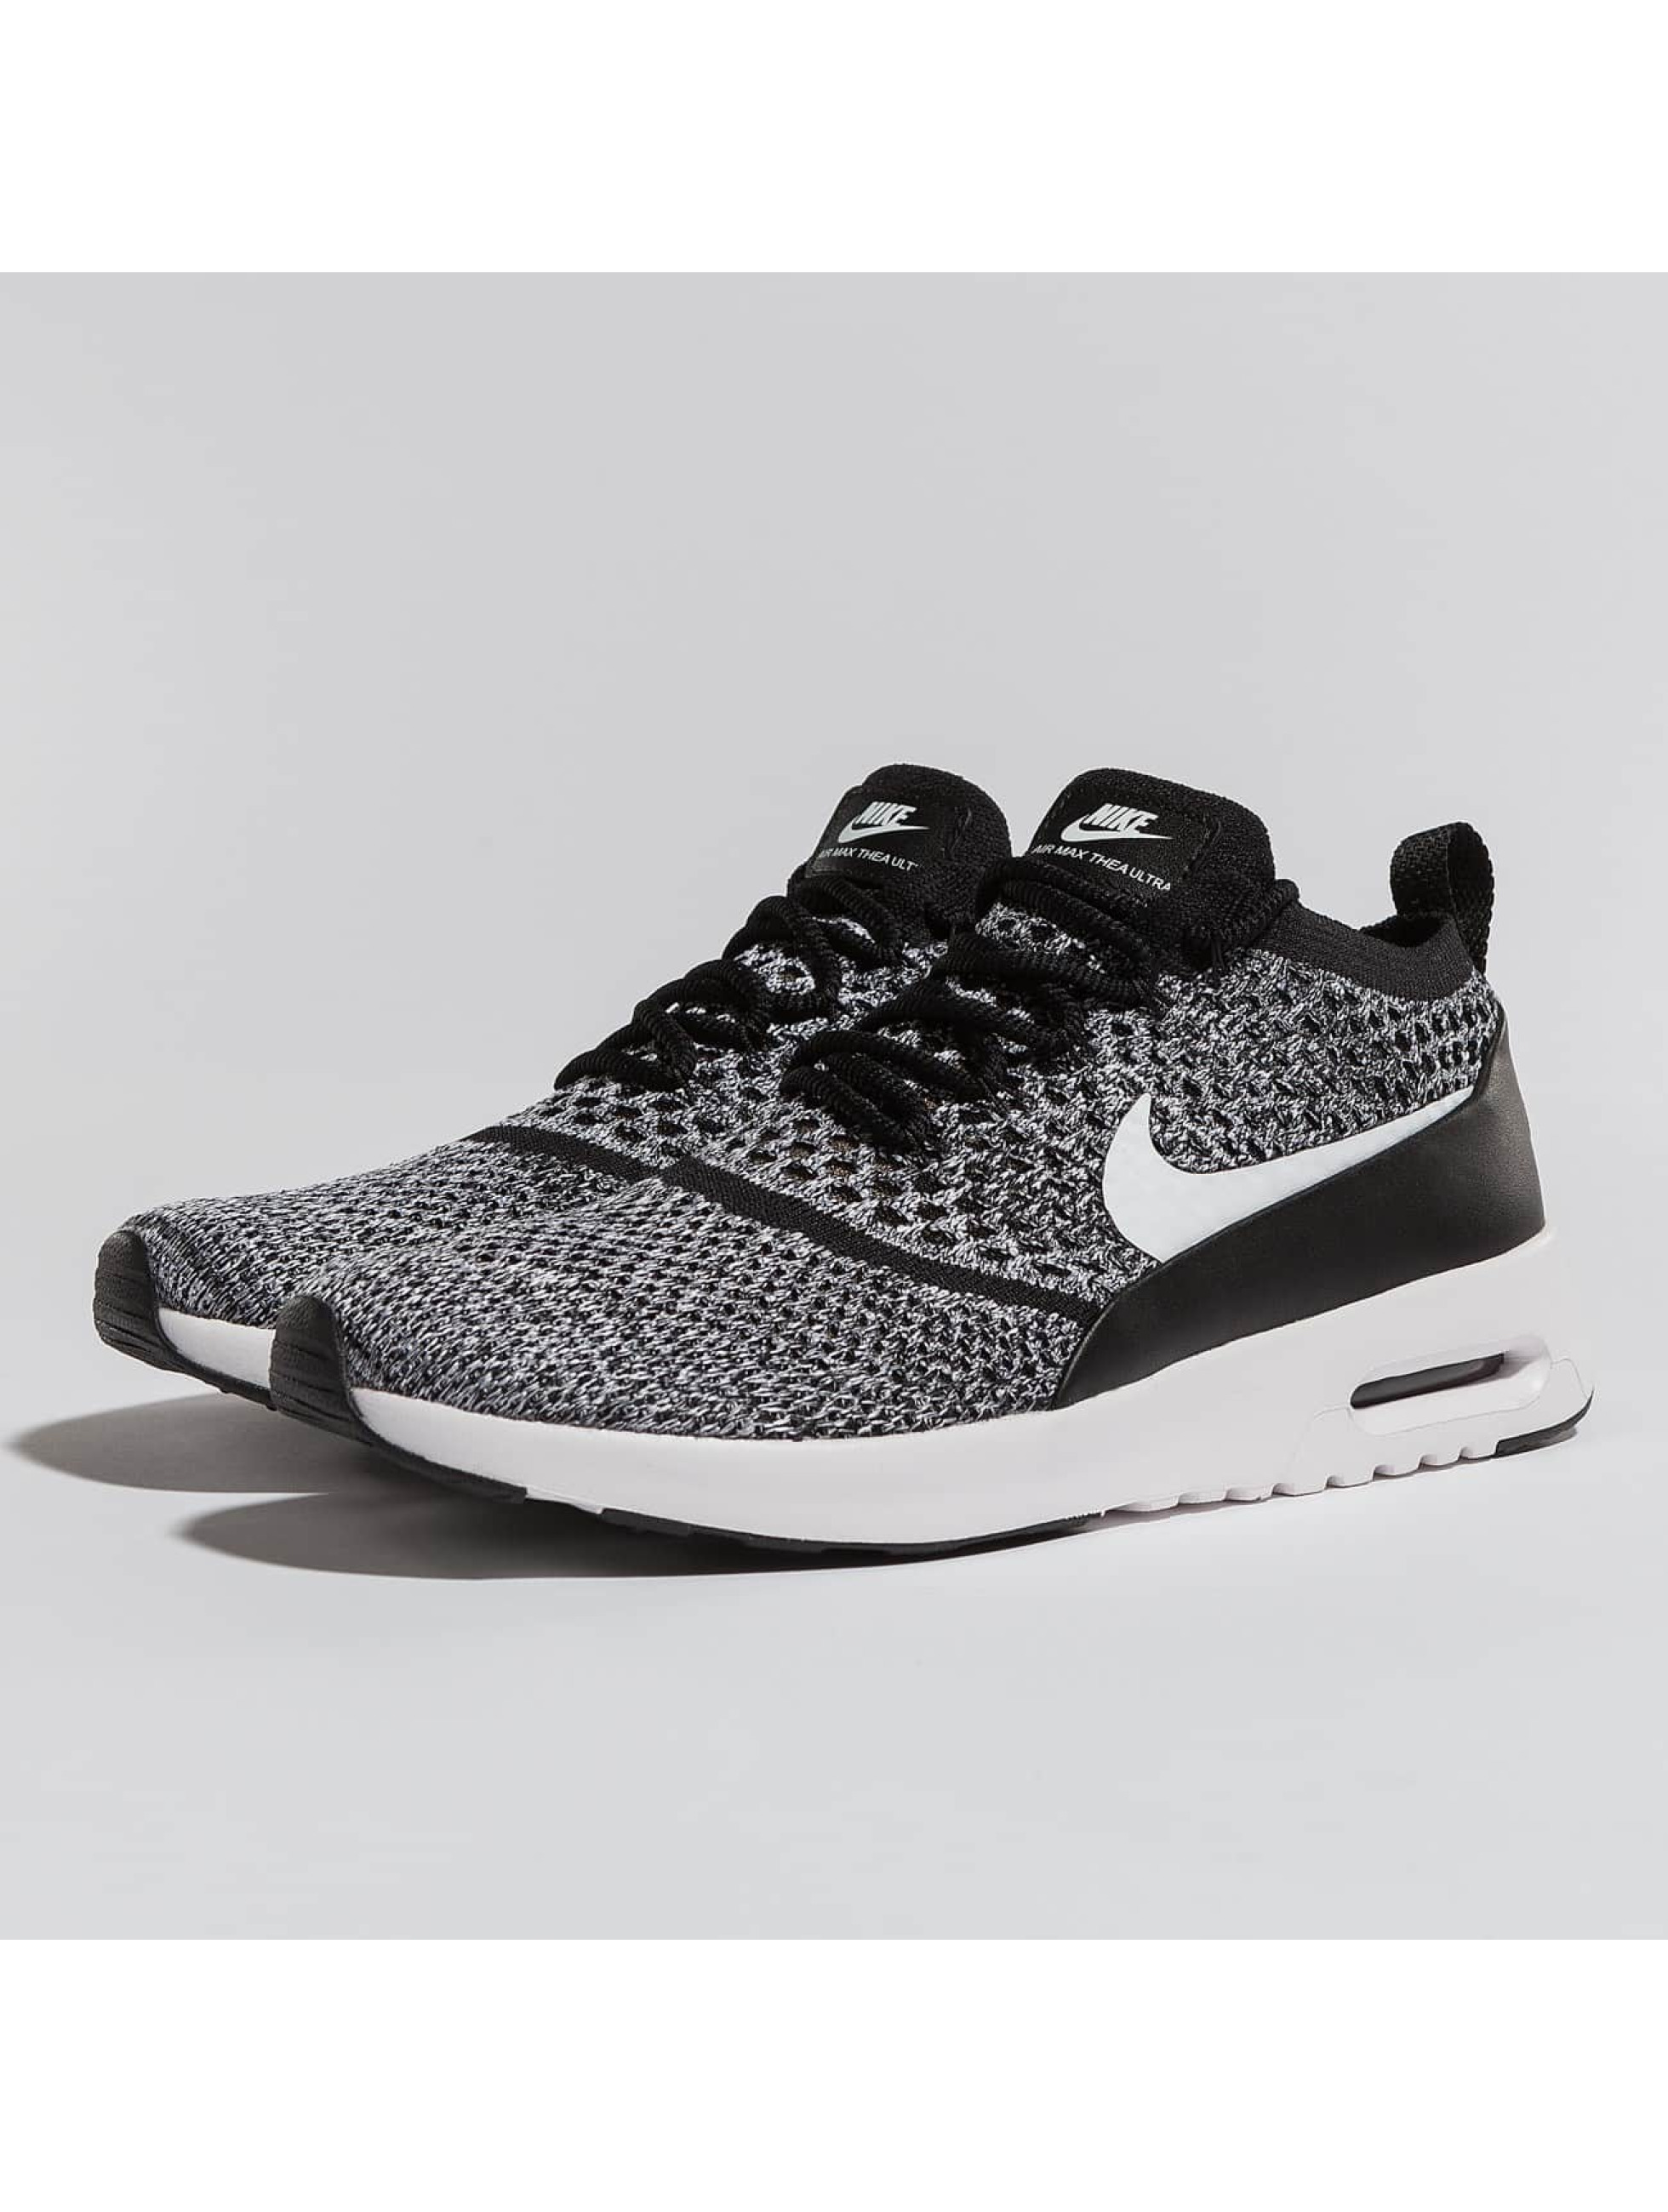 nike damen sneaker air max thea ultra flyknit in schwarz. Black Bedroom Furniture Sets. Home Design Ideas